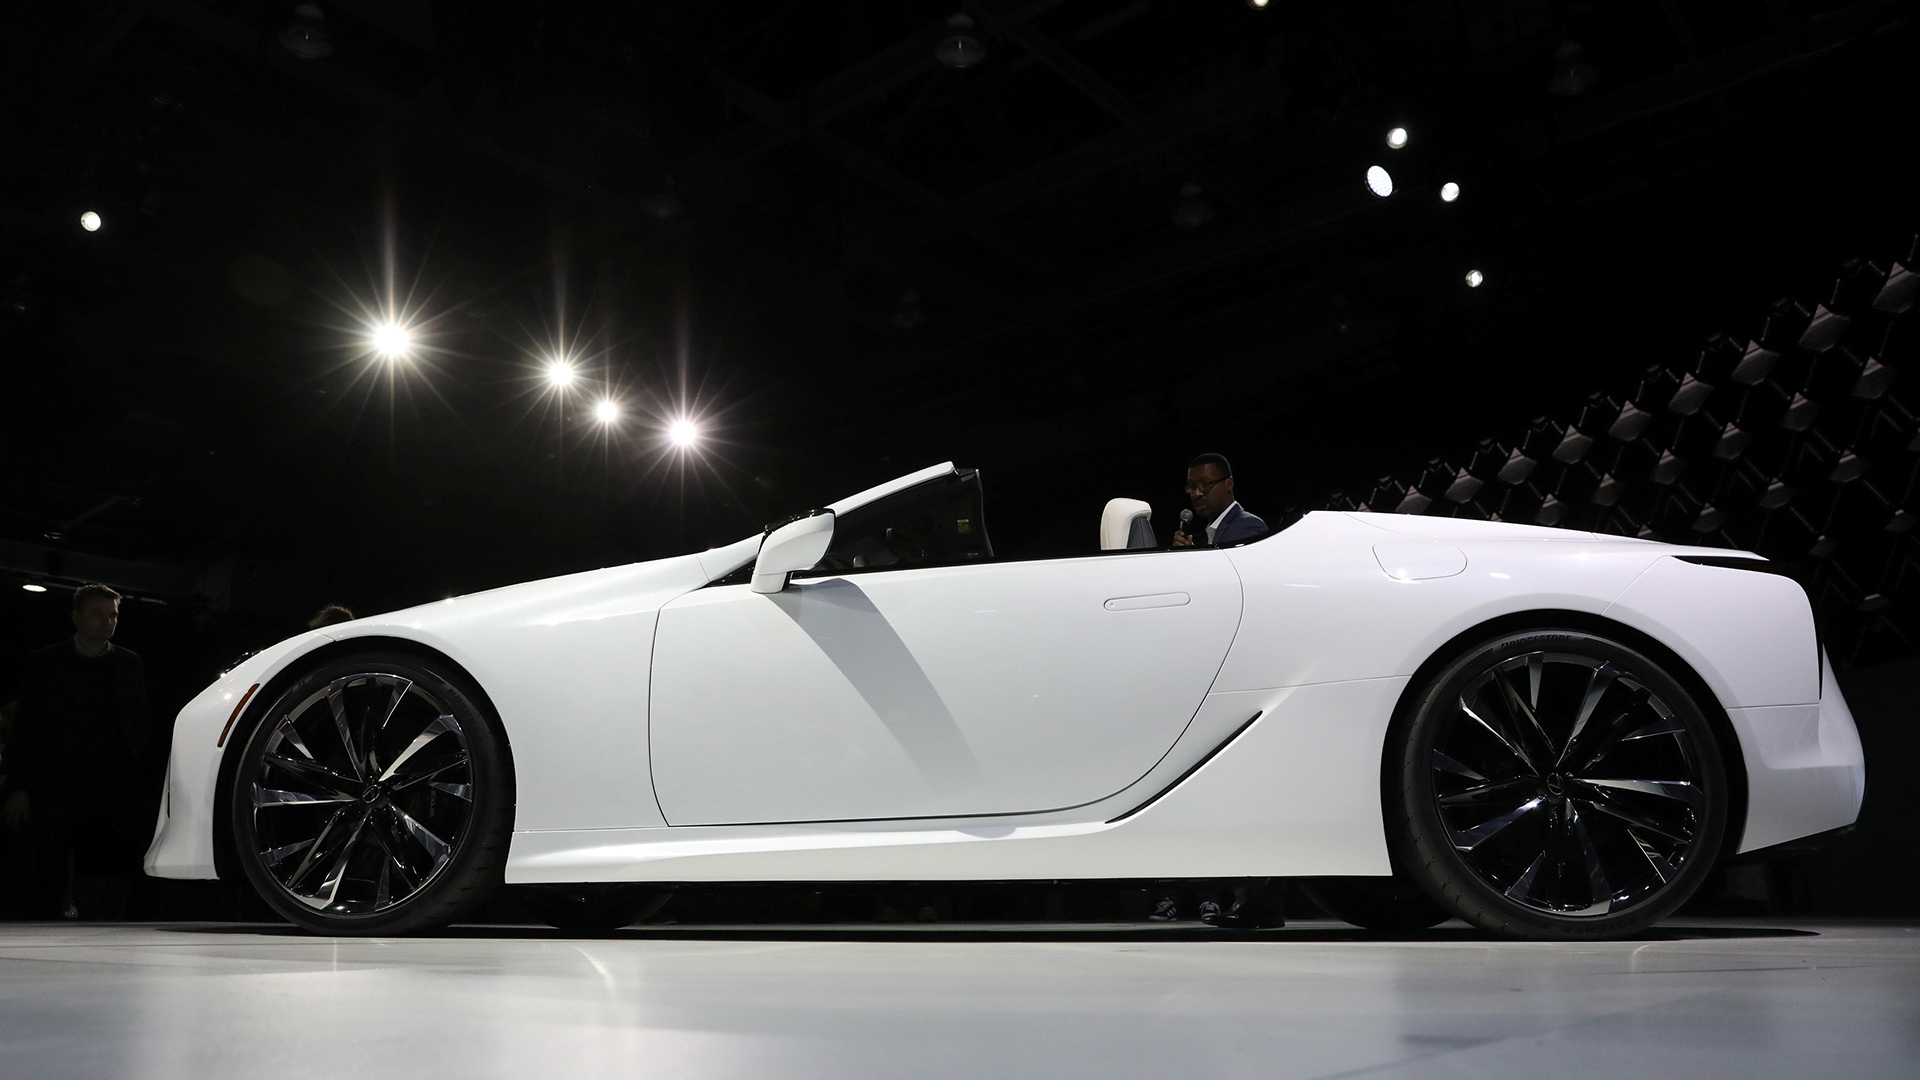 El concepto de Lexus LC convertible se presenta durante un evento en el North American International Auto Show en Detroit, Michigan.(Reuters)